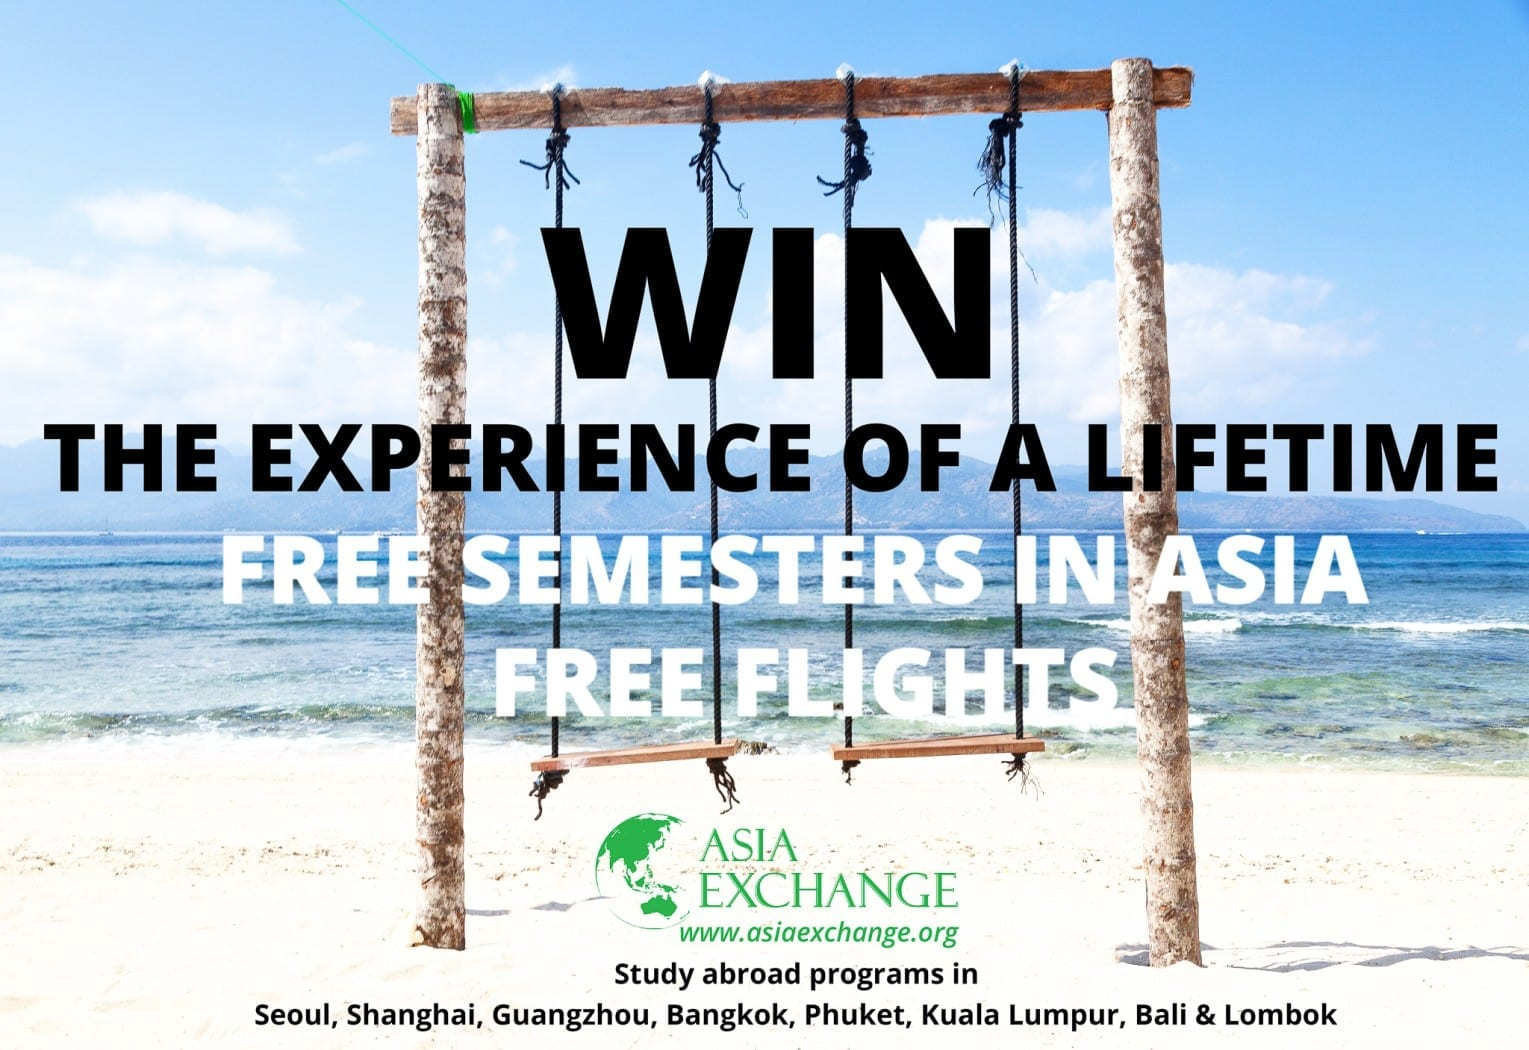 Win a Semester Abroad with Flights!